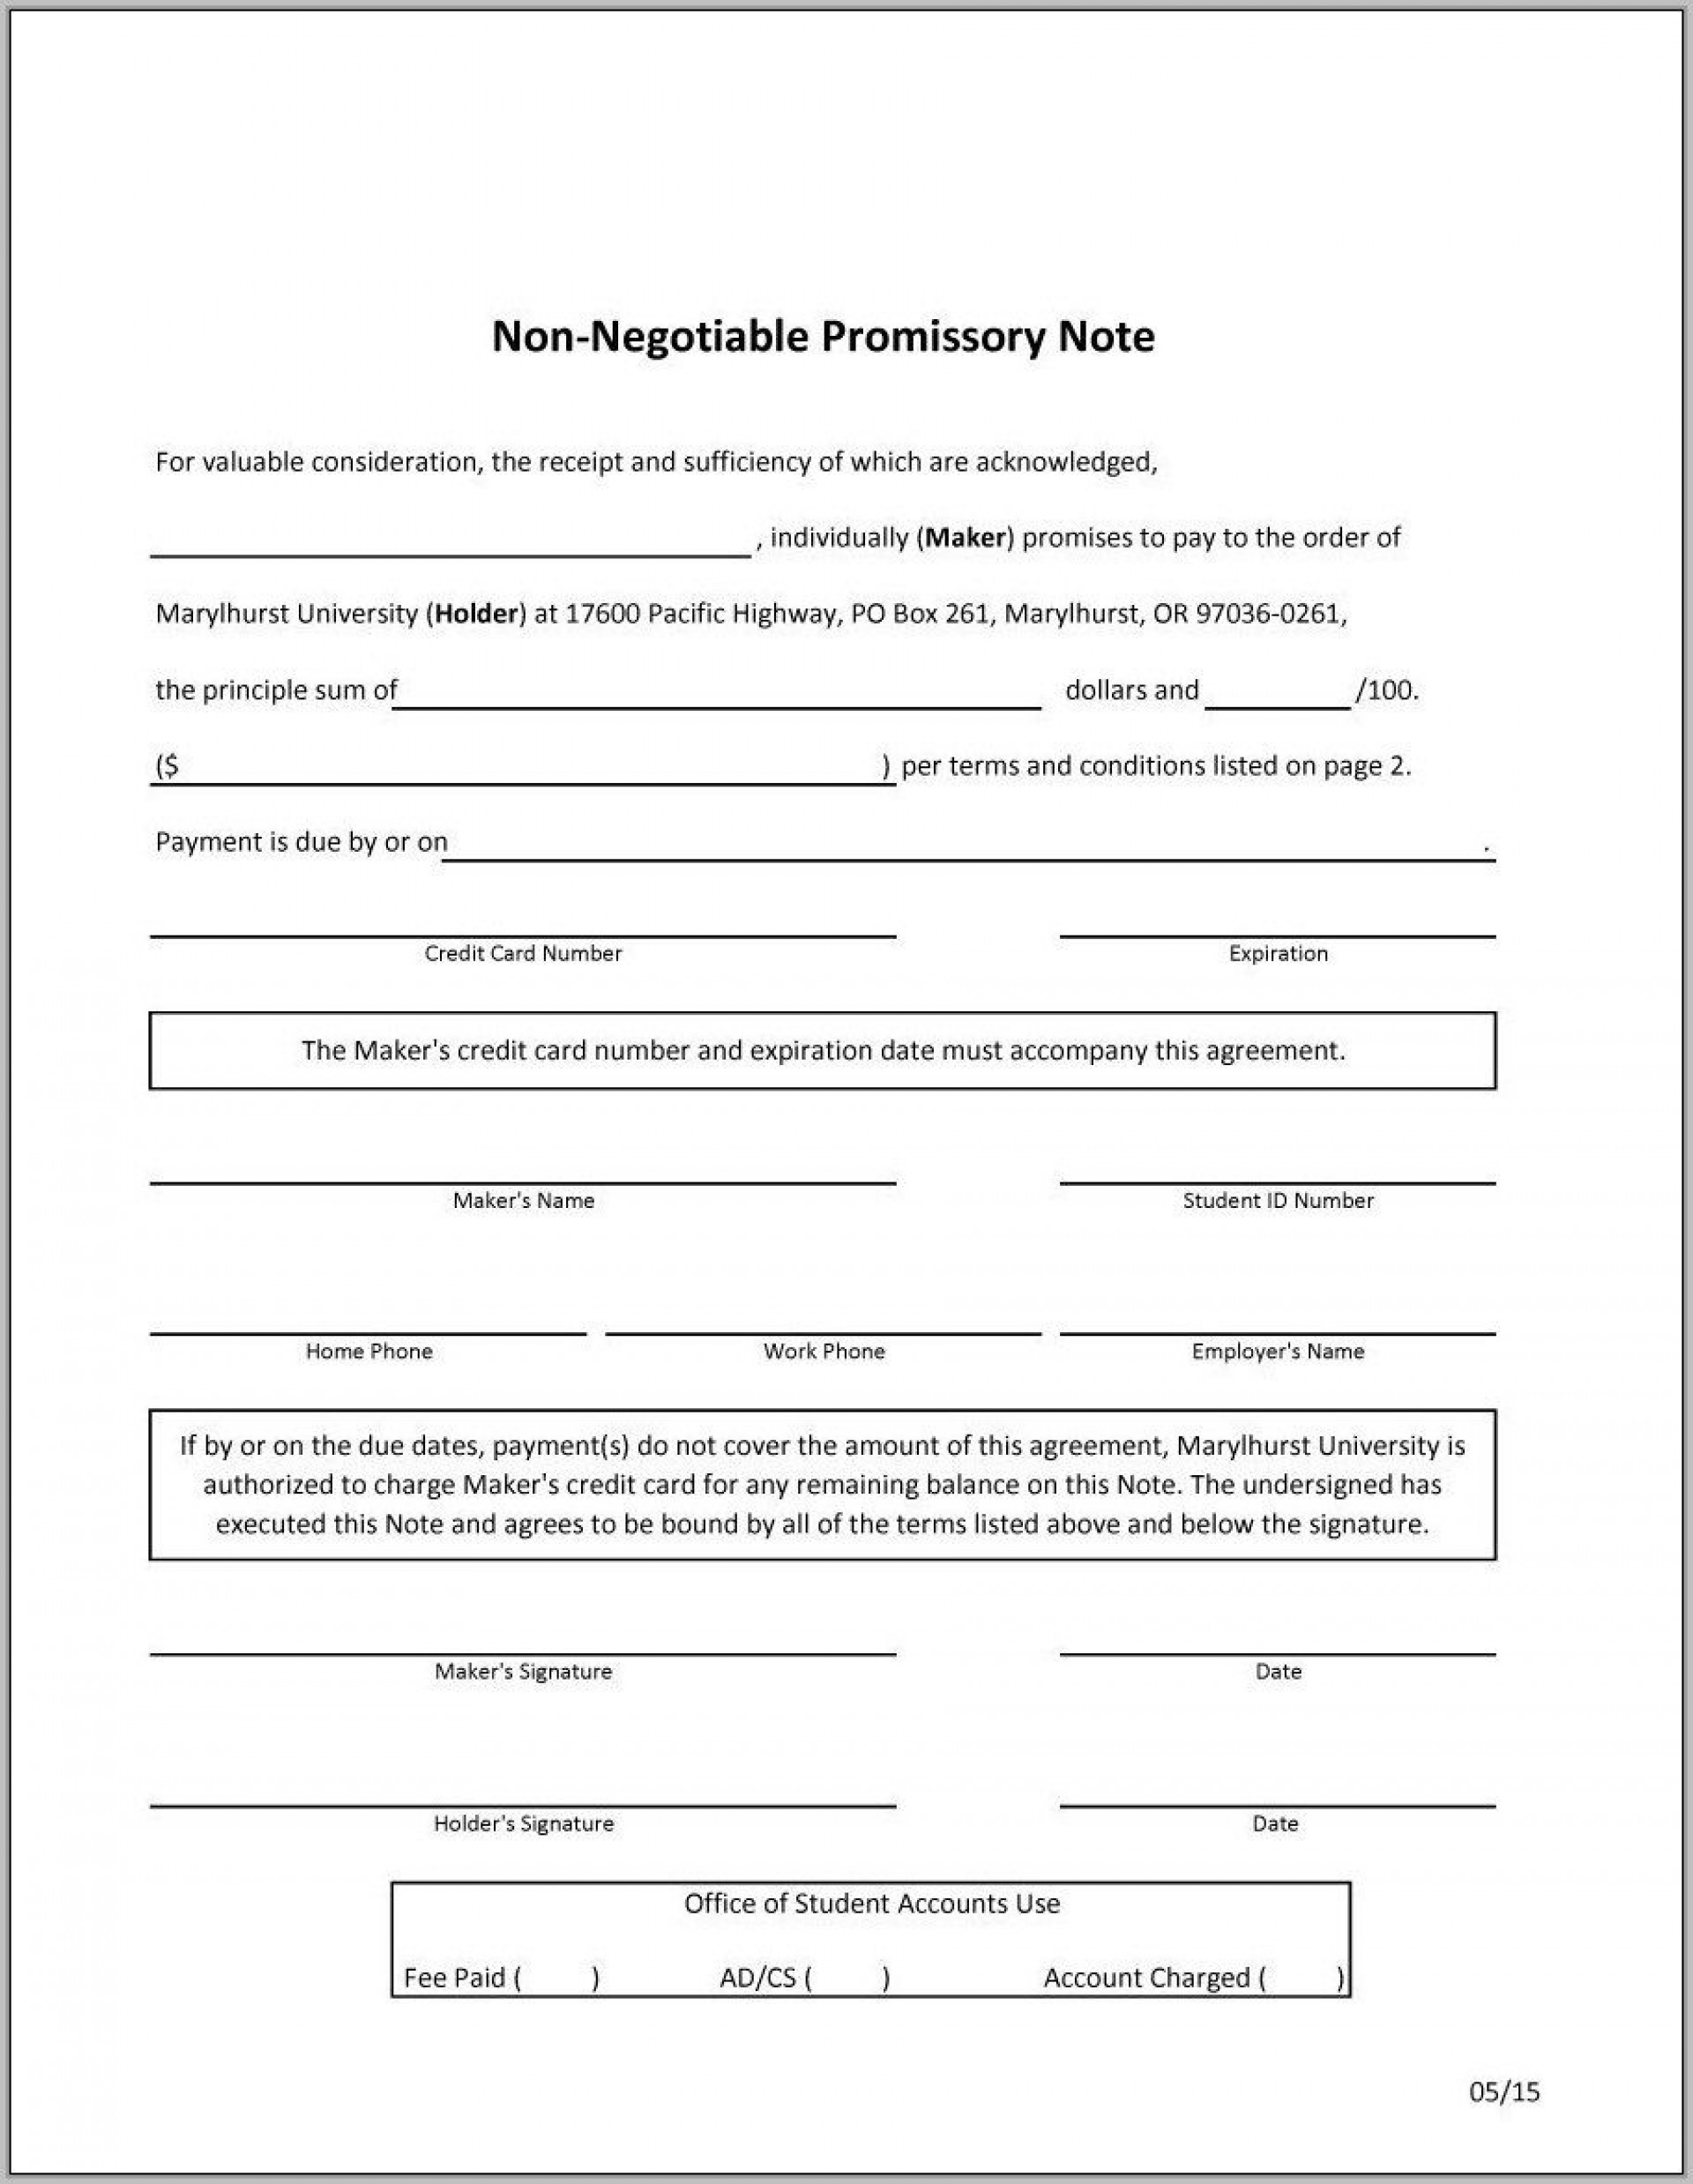 002 Impressive Promissory Note Template Free Image  Printable Blank Form Download Pdf Canada1920